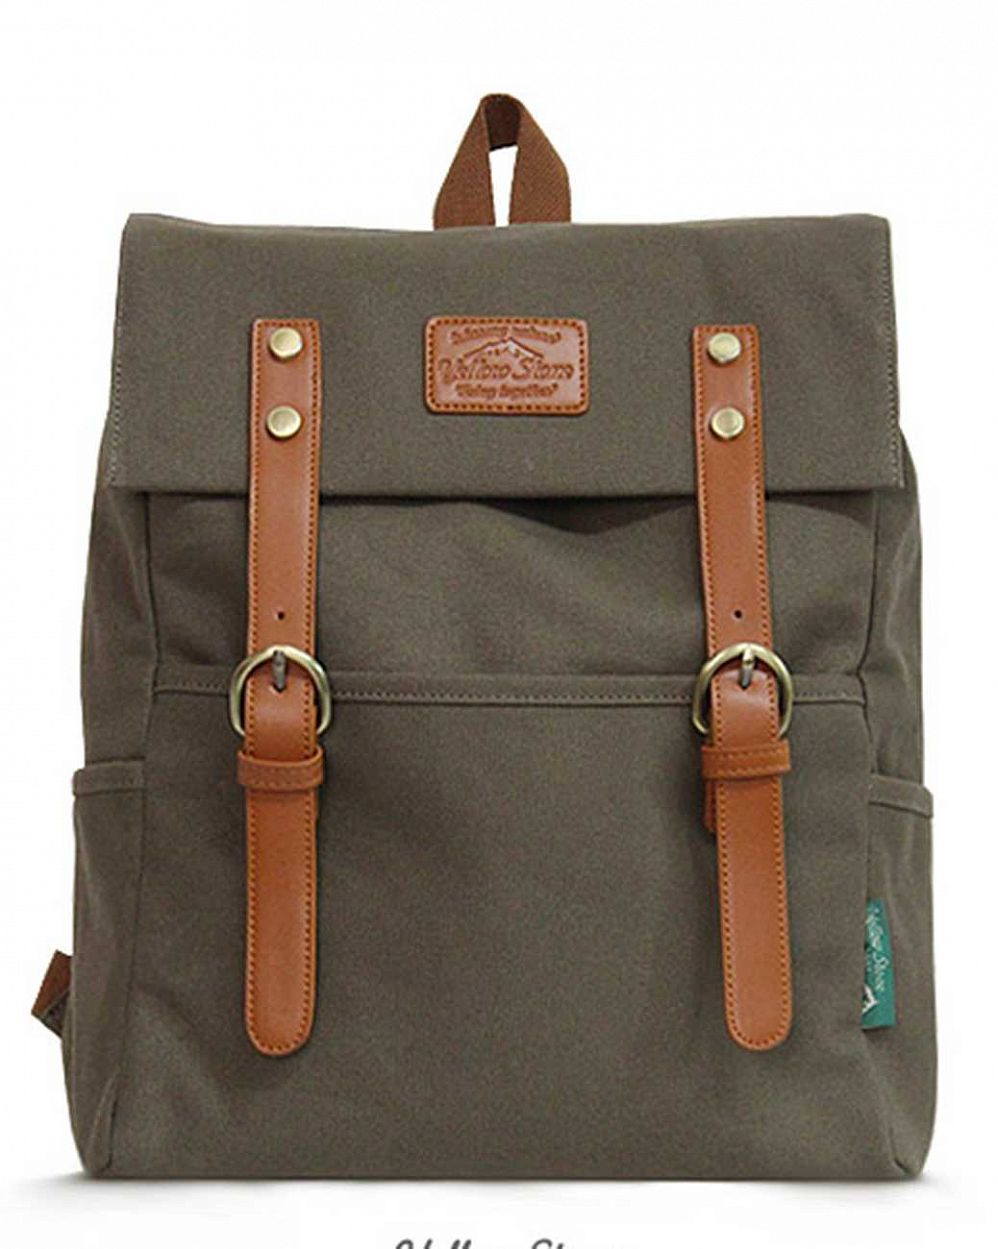 Рюкзак-мешок YellowStone Gazelle Bag mud khaki YS Survey отзывы